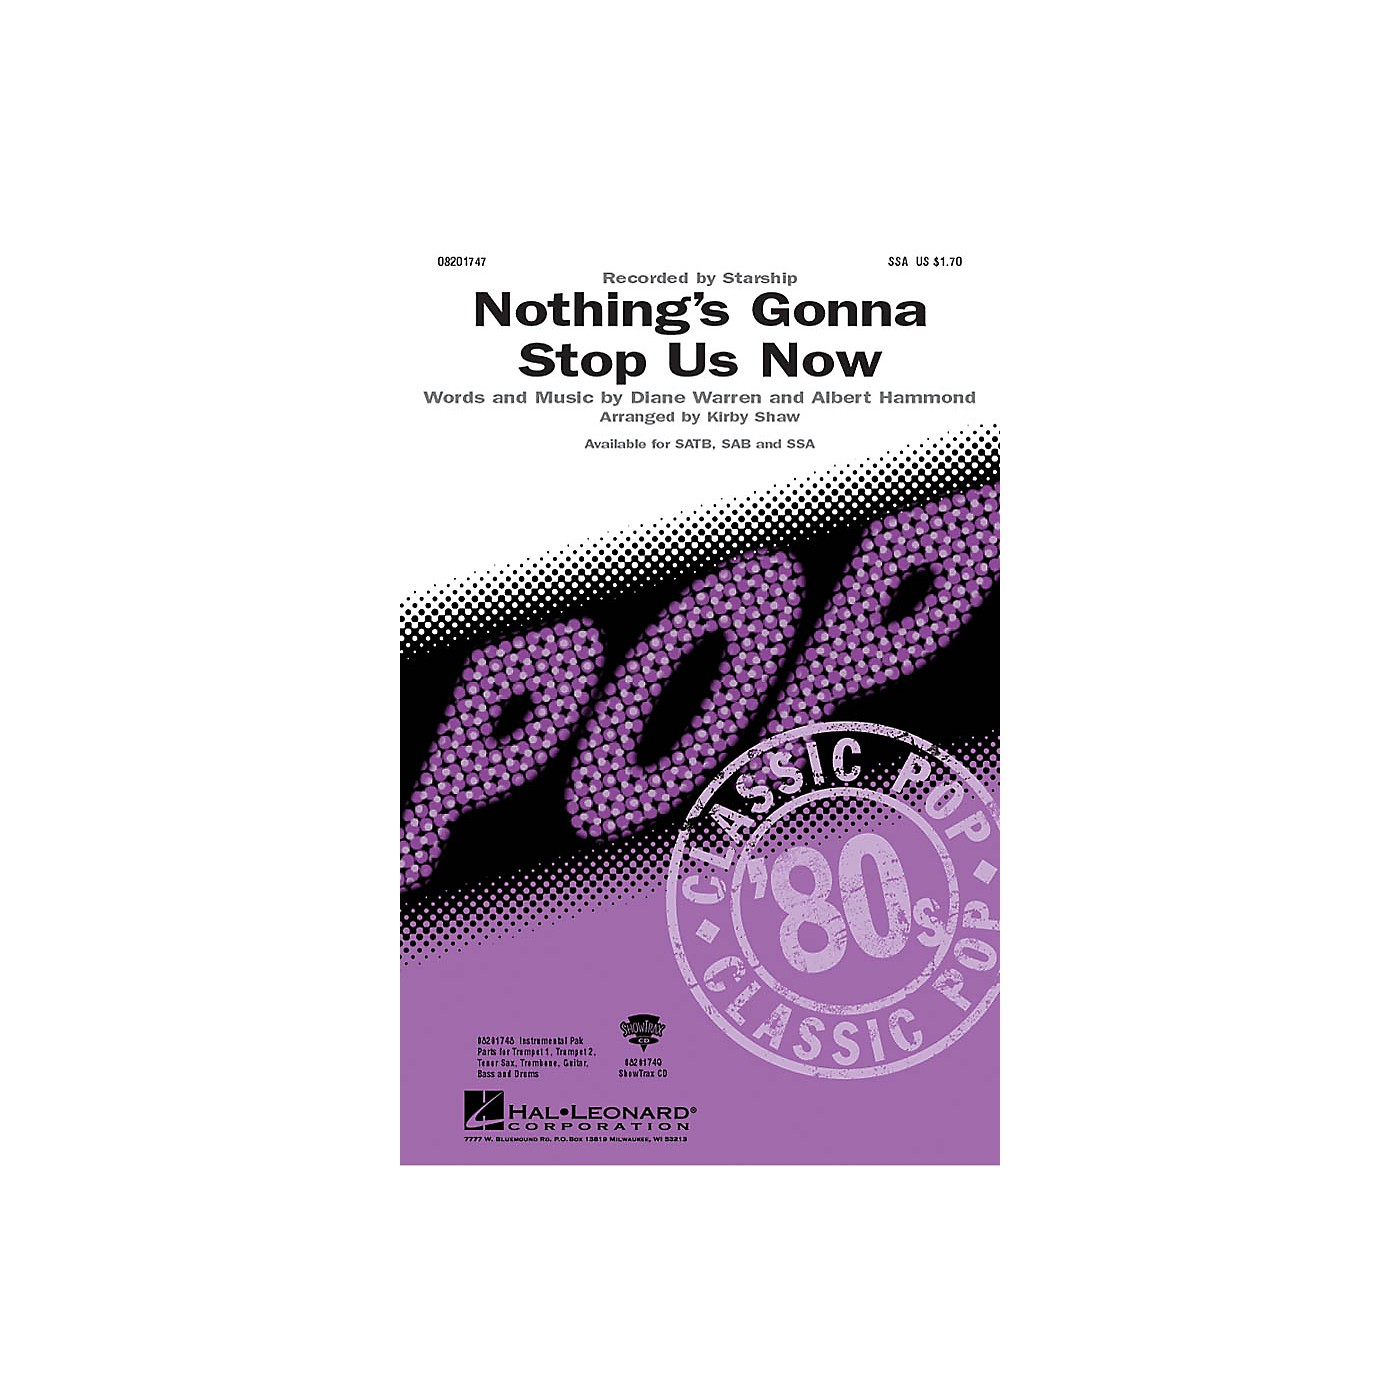 Hal Leonard Nothing's Gonna Stop Us Now SSA by Starship arranged by Kirby Shaw thumbnail